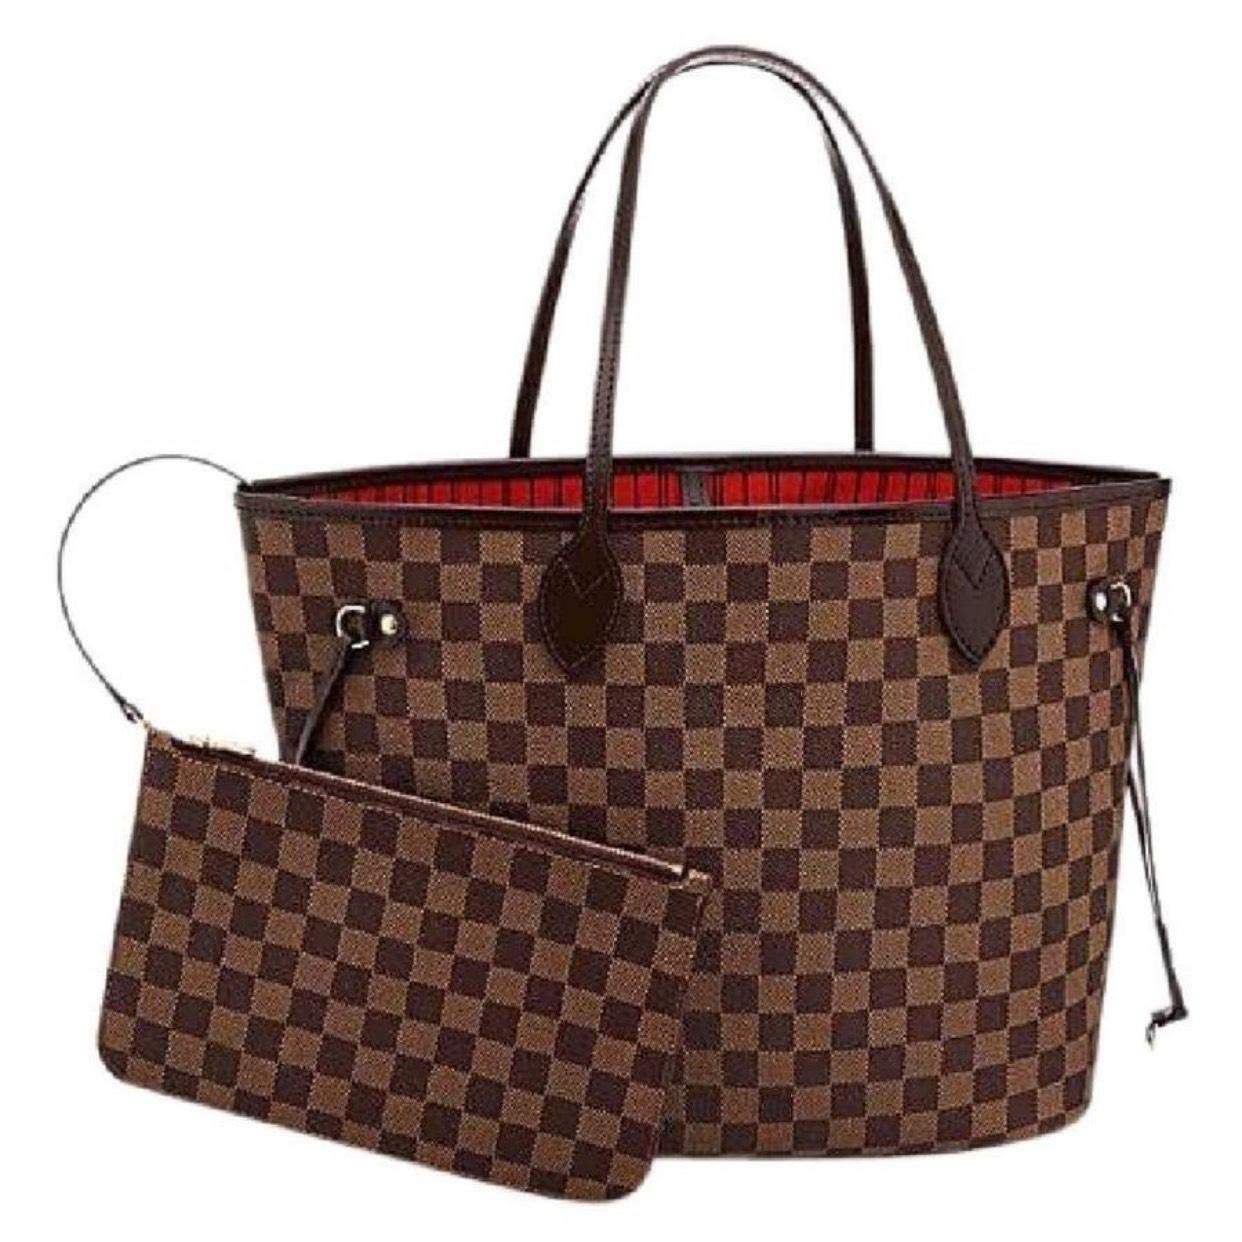 V Style Bags Women Handbag Tote MM Shoulder Bag Organizer made of Canvas Size 12.6 x 11.4 x 6.7 inches by Unknown Binding (Image #2)